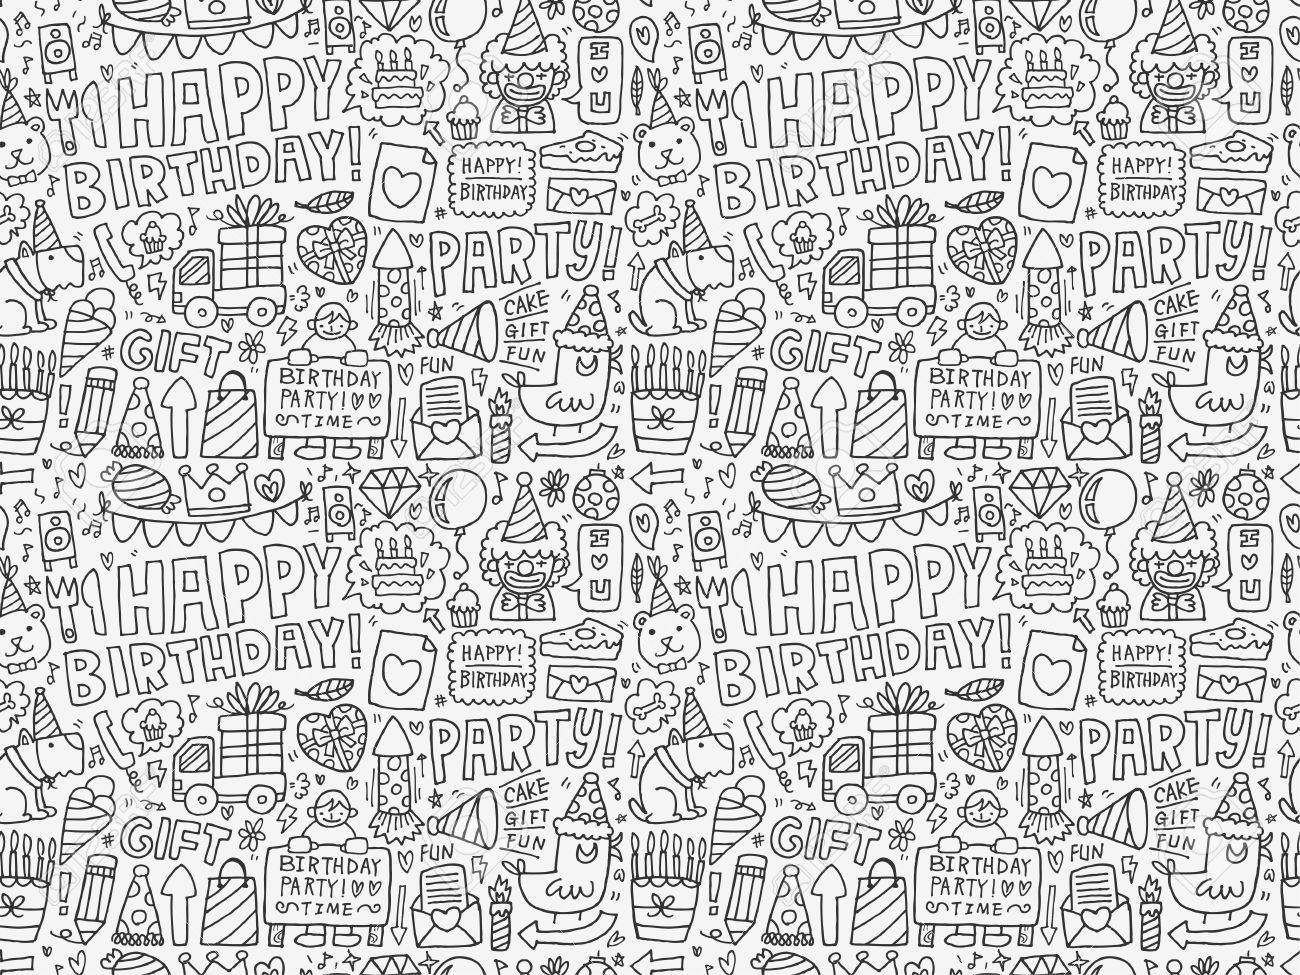 Seamless Doodle Birthday party pattern background - 28522909